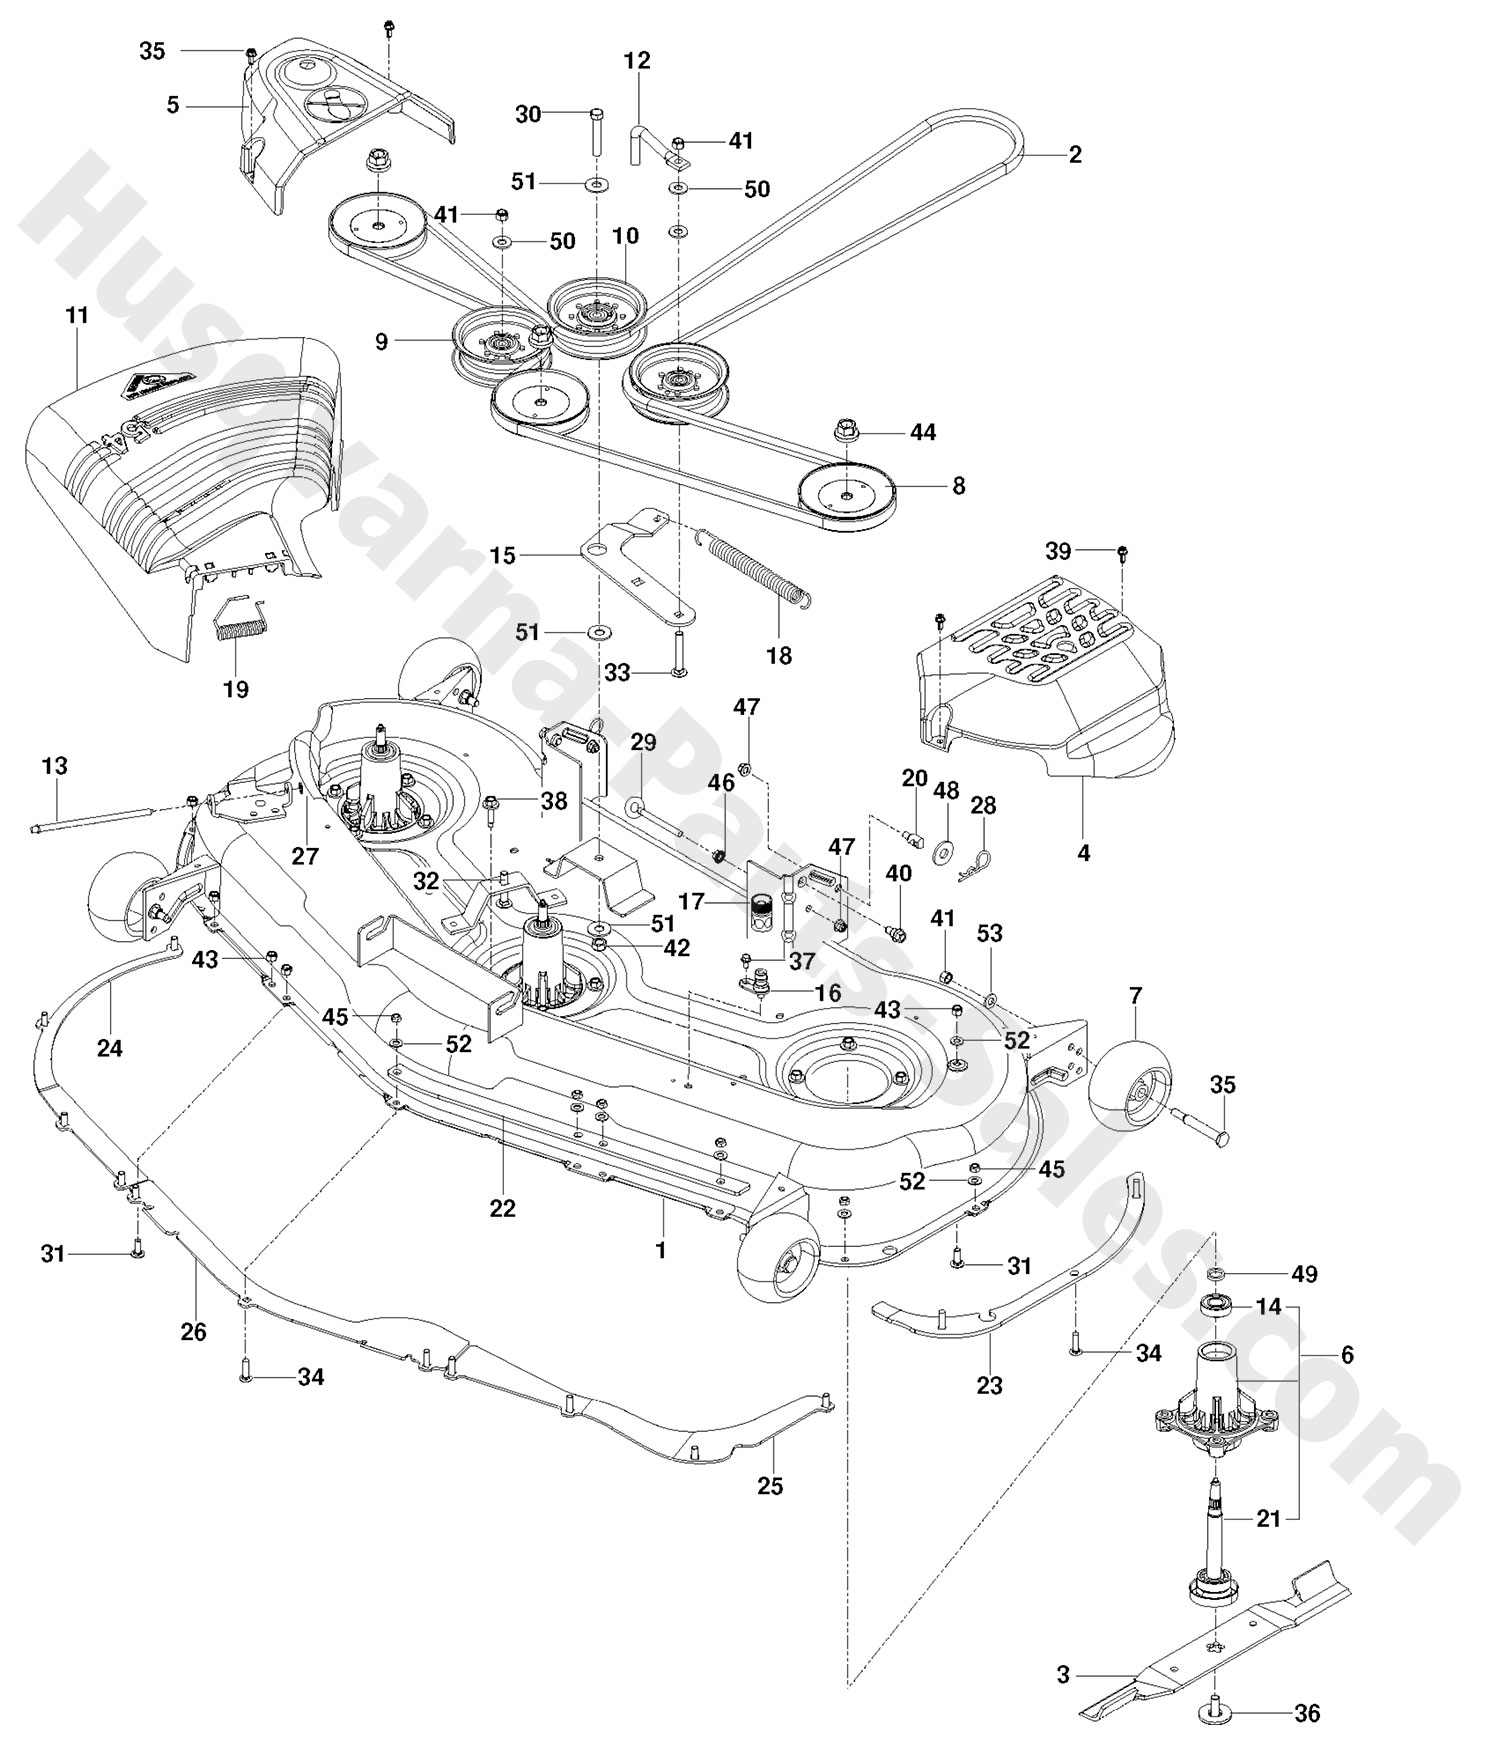 Husqvarna Rider 155 Wiring Diagram Echo Wiring Diagram